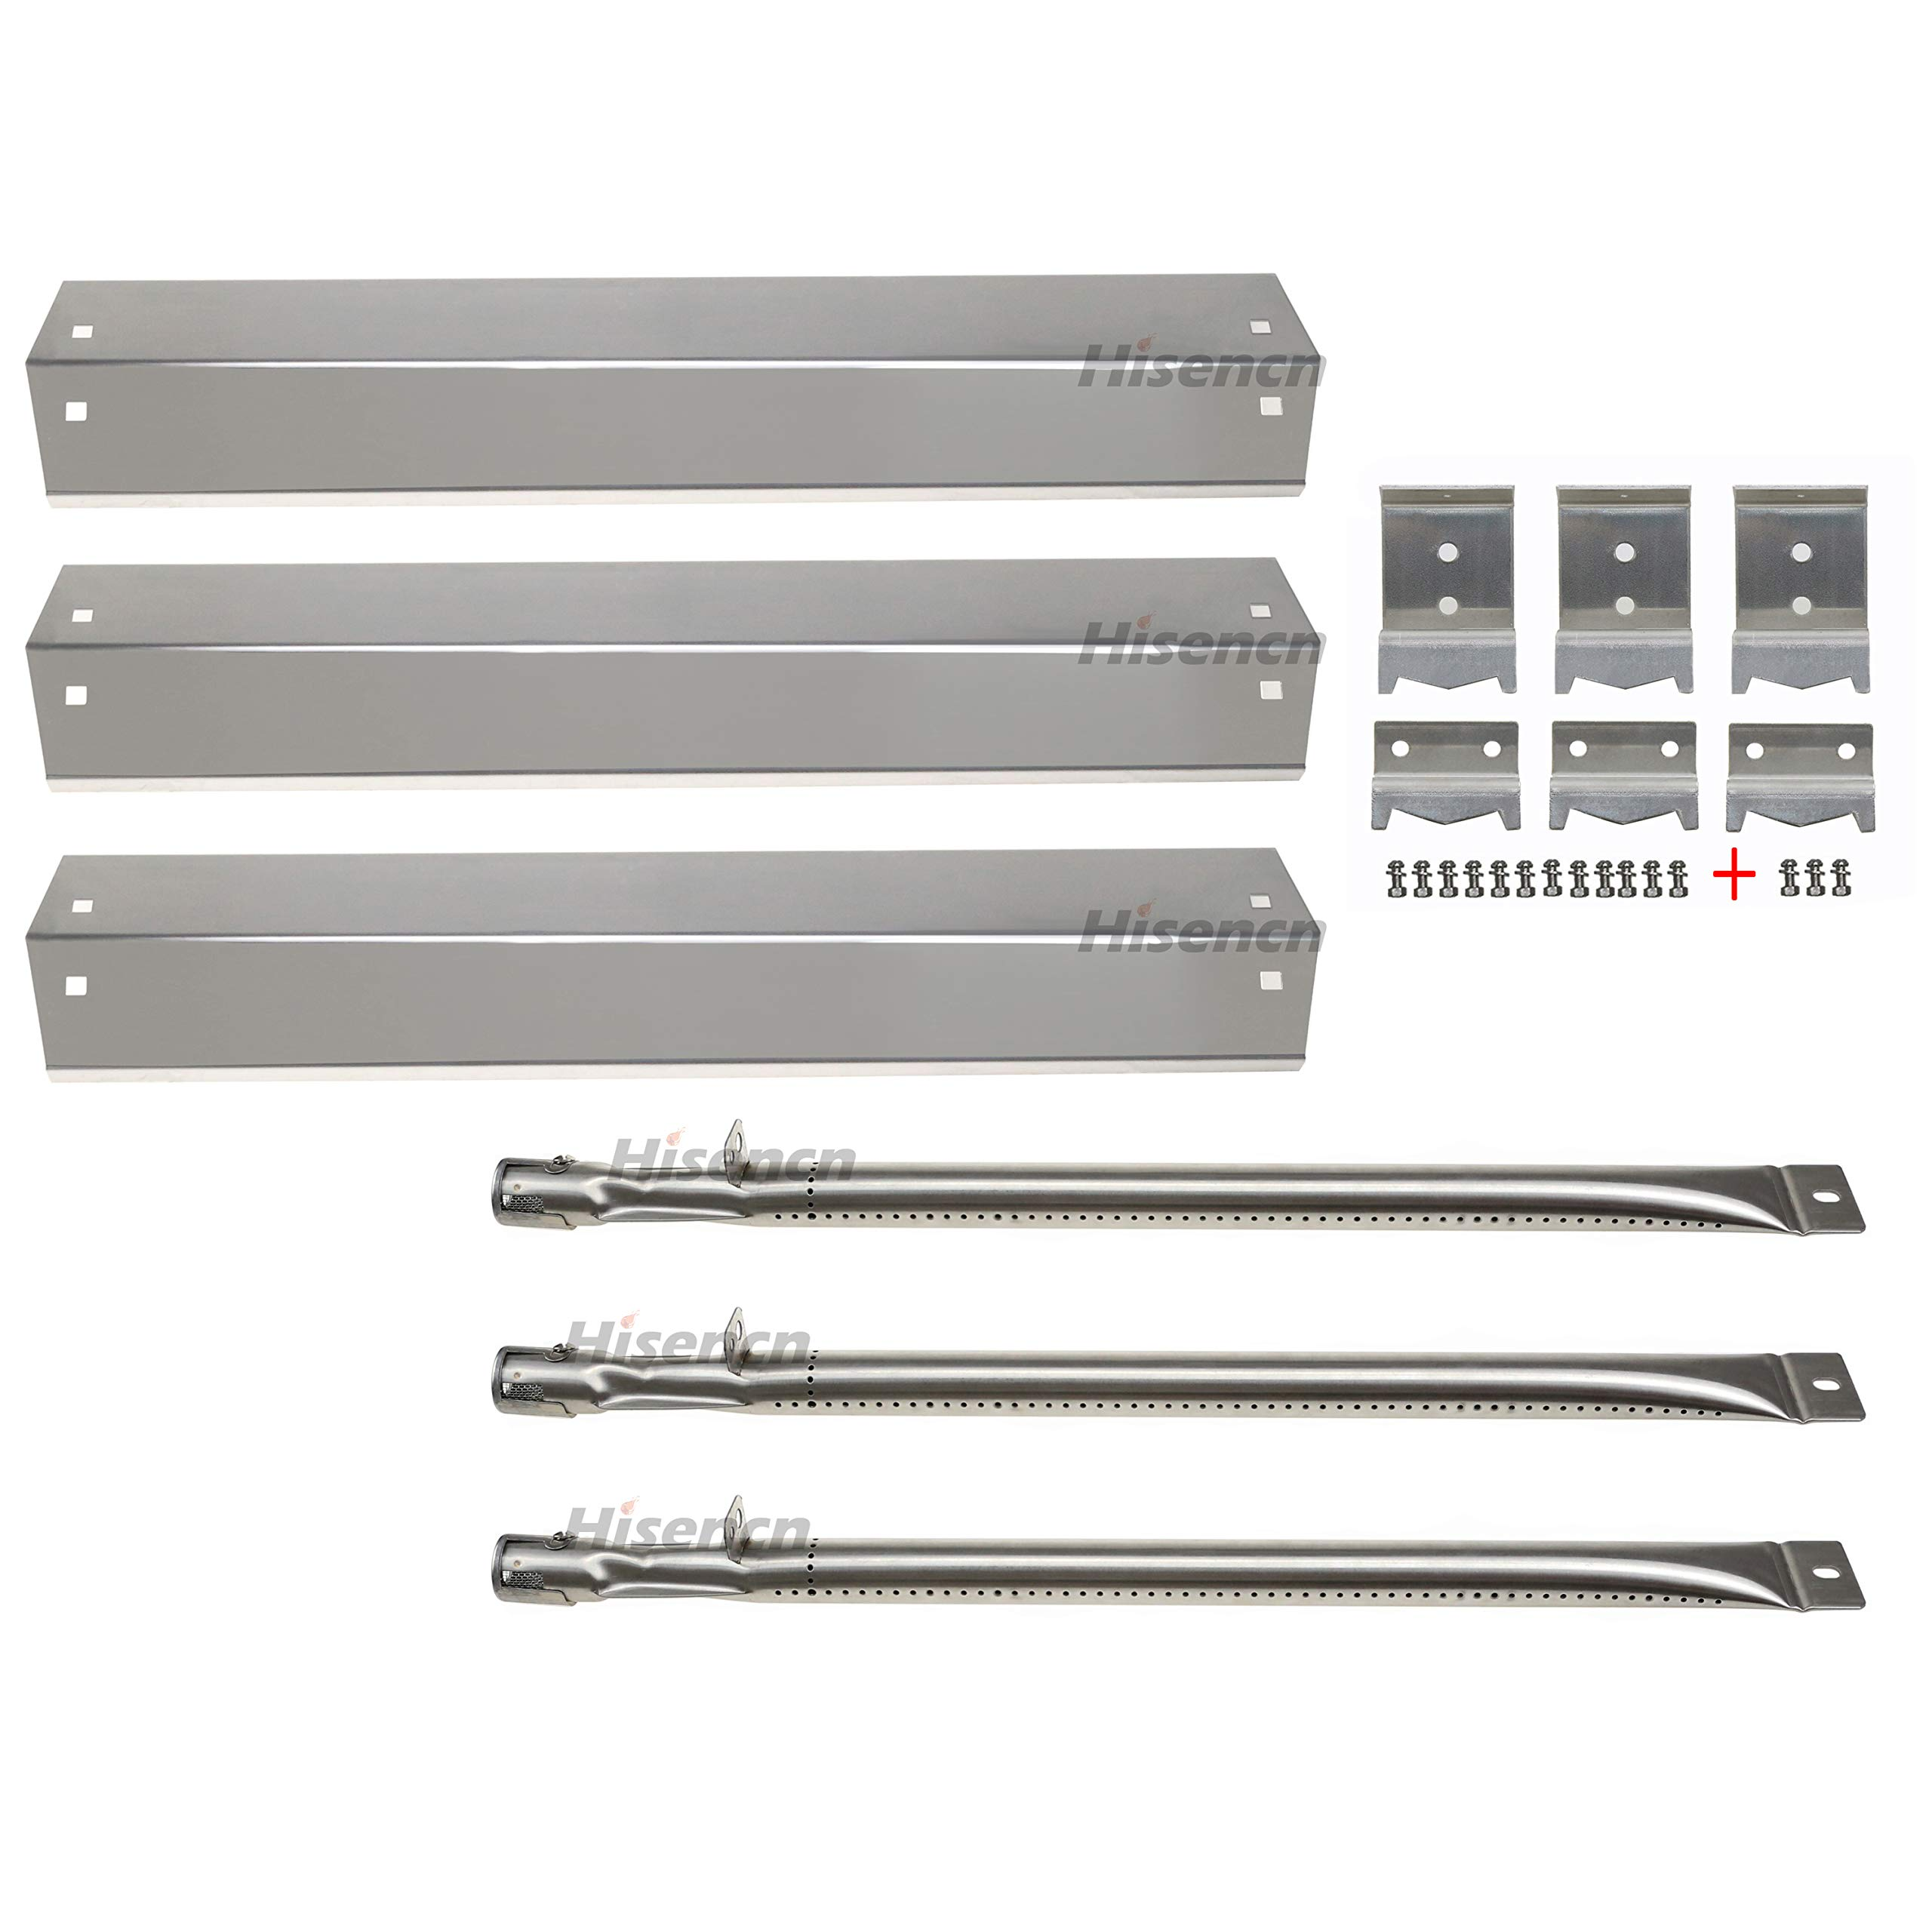 Hisencn Replacement Stainless Steel Burner, Heat Plate, Hanger Brackets for Chargriller 3001, 3008, 3030, 4000, 5050 Gas Grill Repair kit